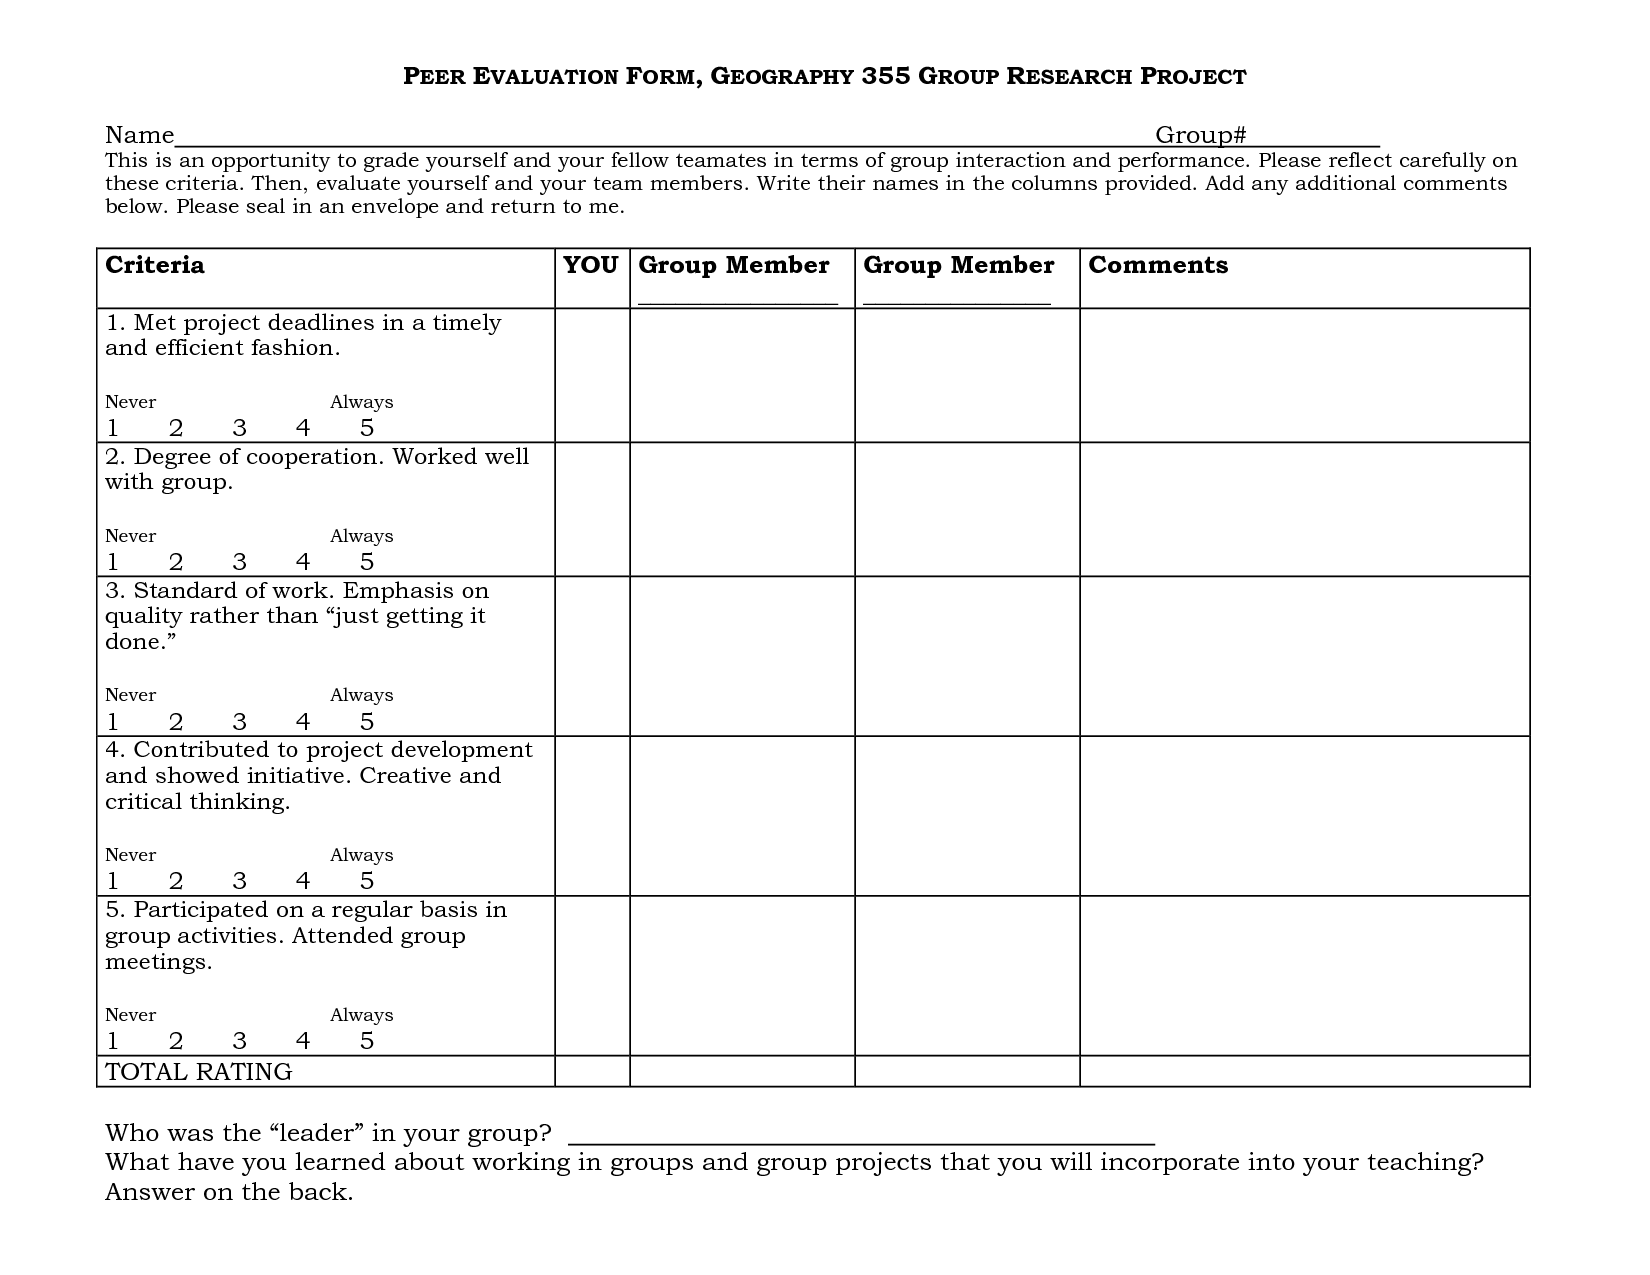 Group Project Peer Evaluation Form